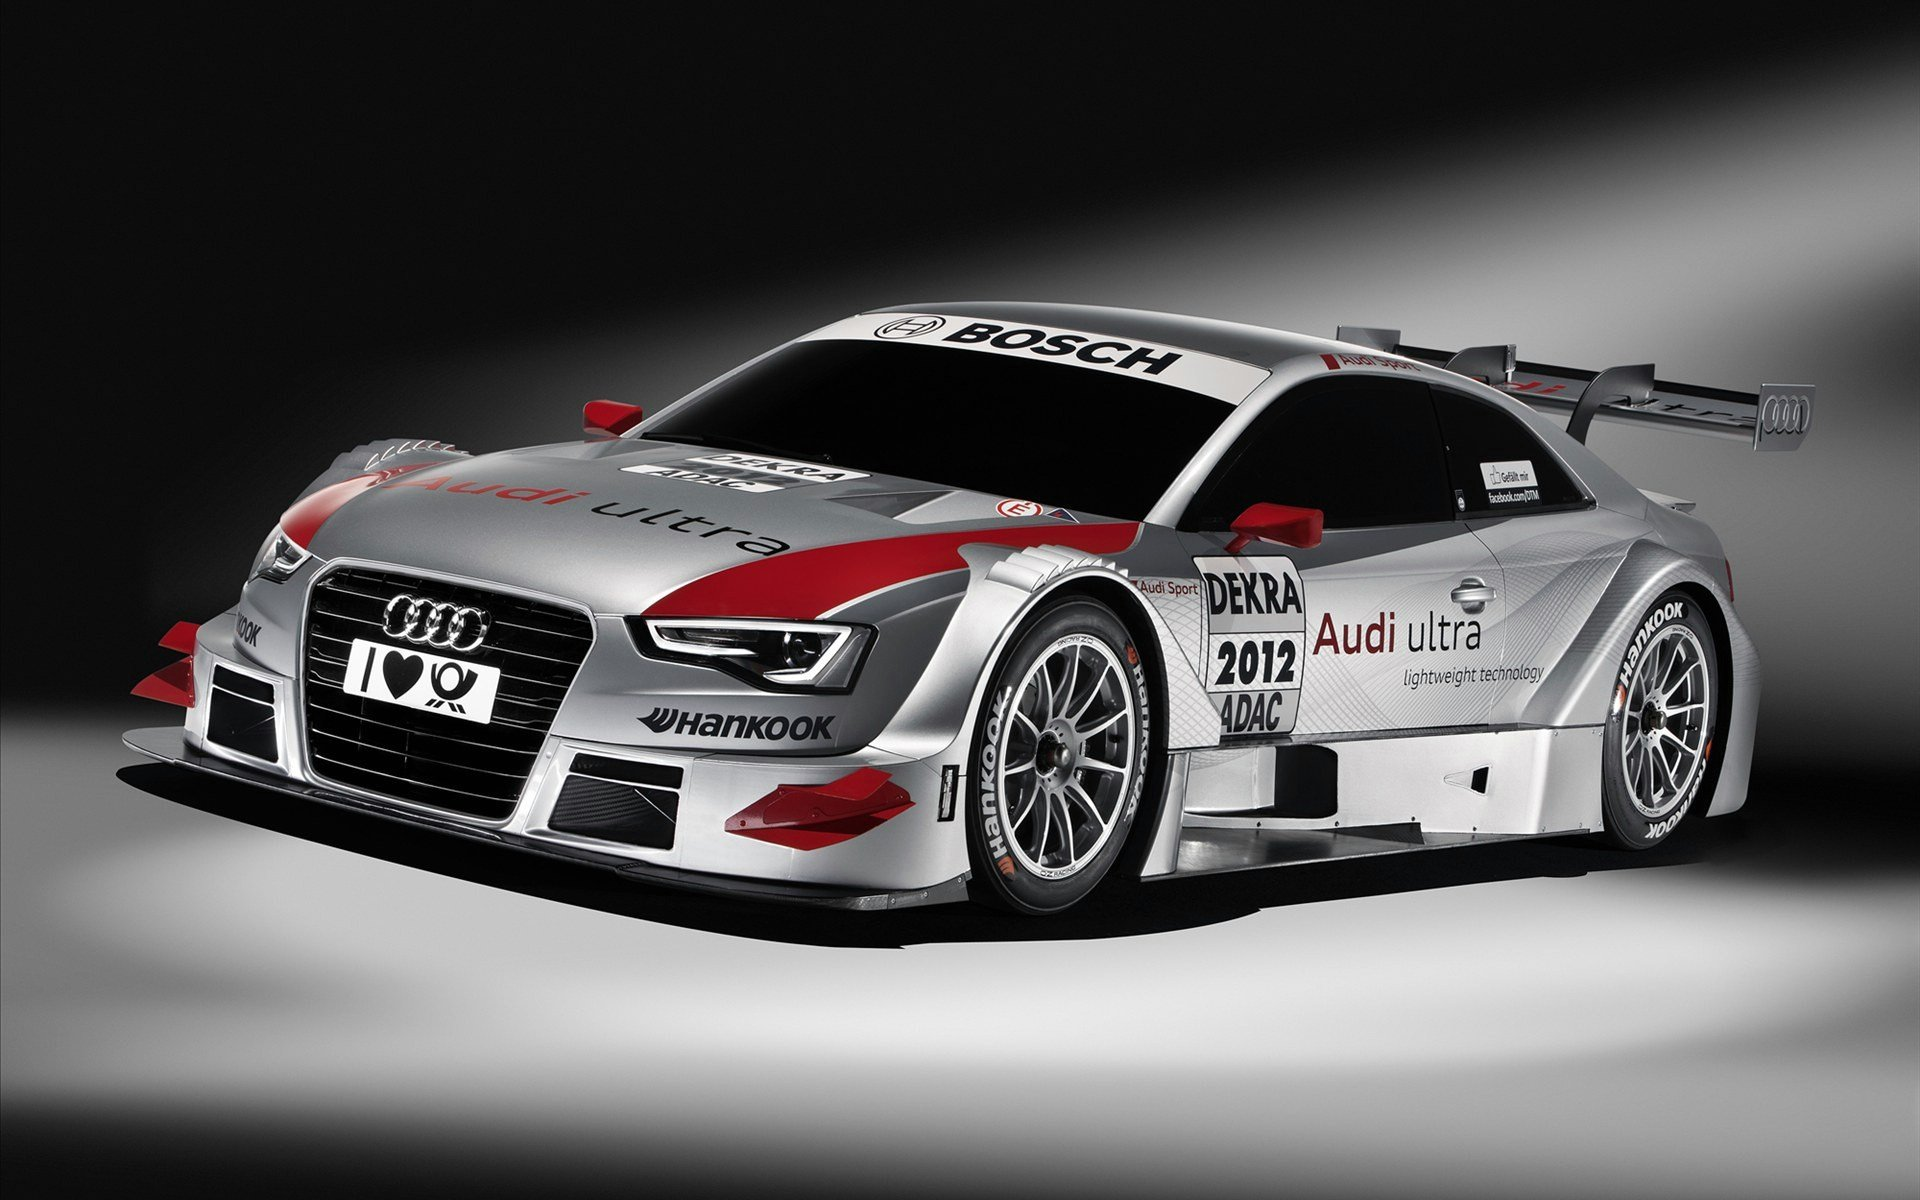 Latest 2011 Audi A5 Dtm Wallpaper Hd Car Wallpapers Id 2258 Free Download